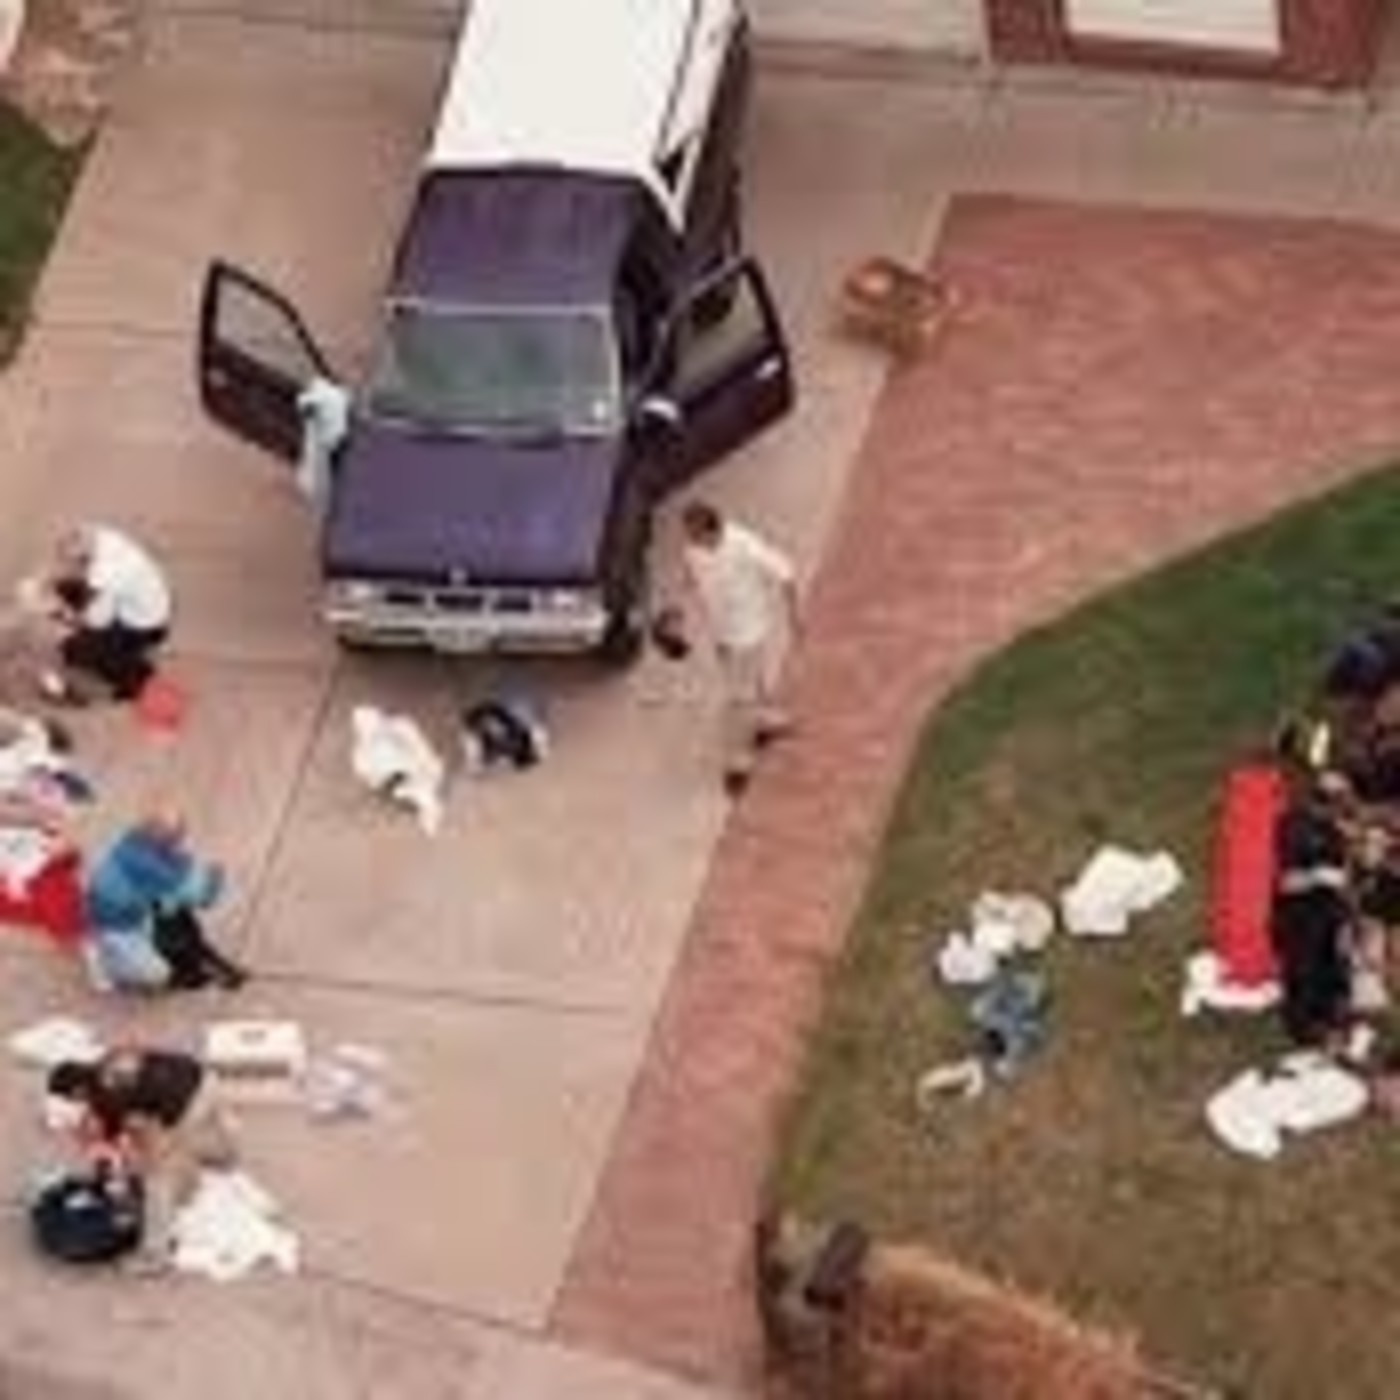 Columbine High School Shootings In Littleton Colorado: Narración De Los Hechos